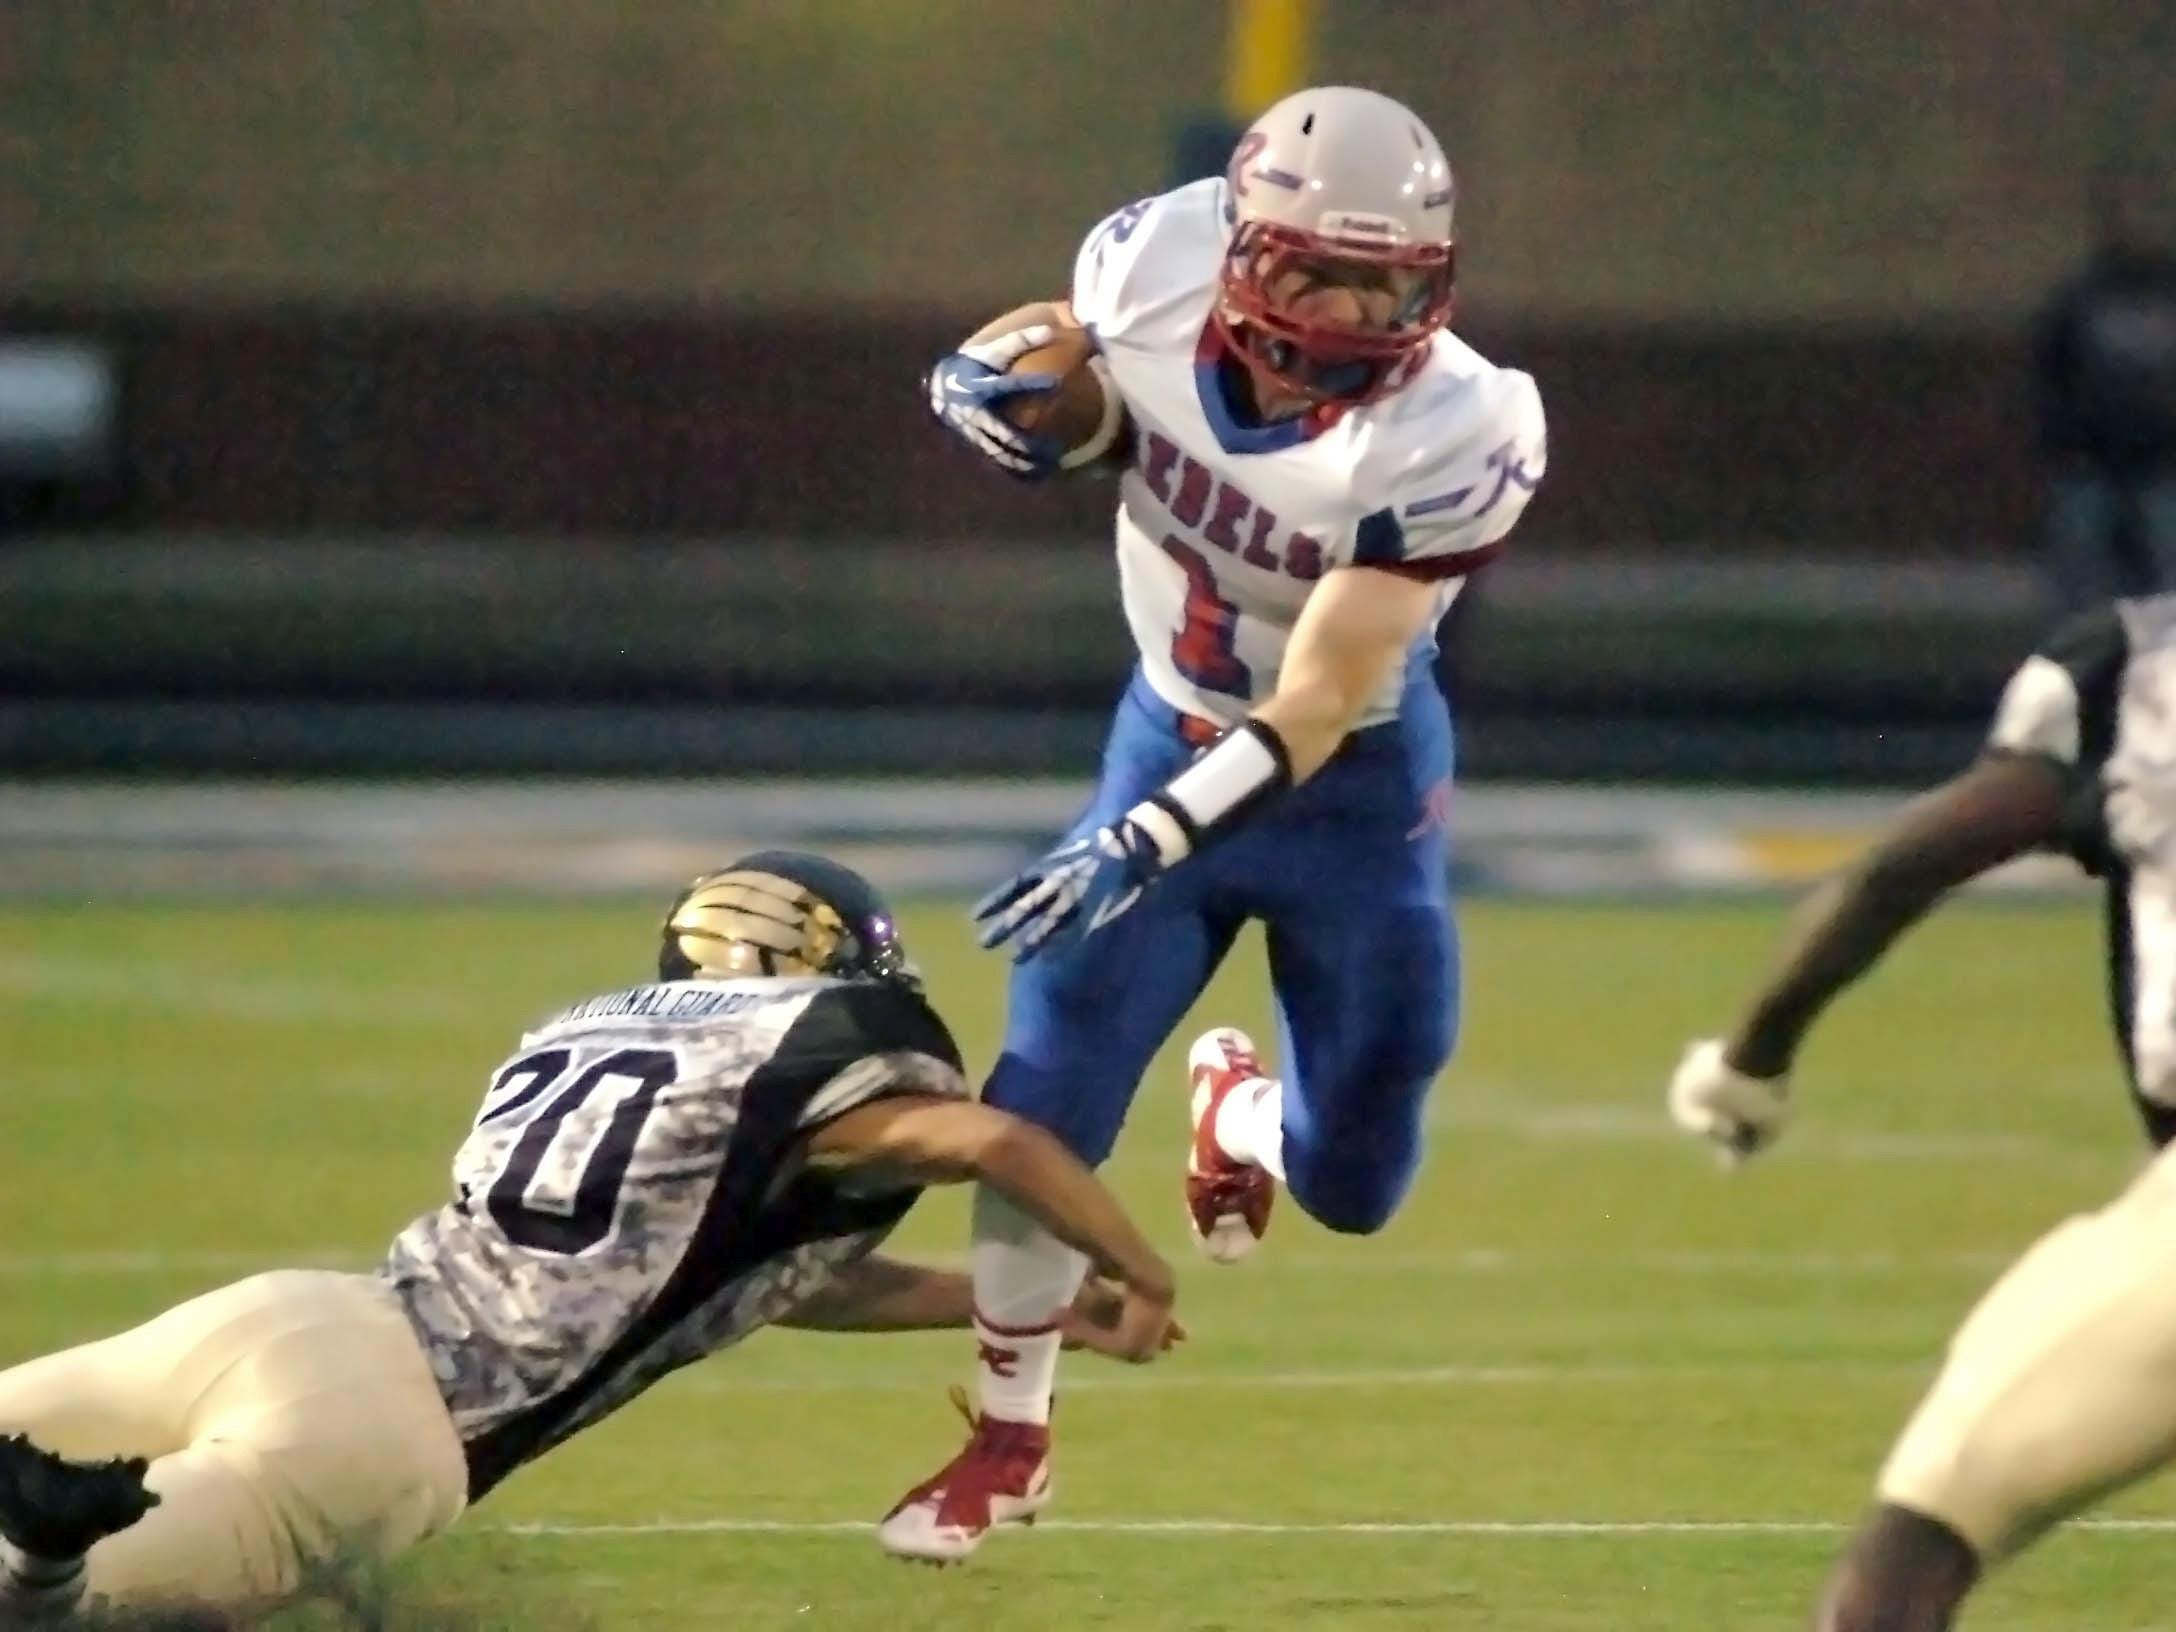 Roncalli's Nate Fries looks for running room in the Rebels' 30-14 win over Decatur Central.